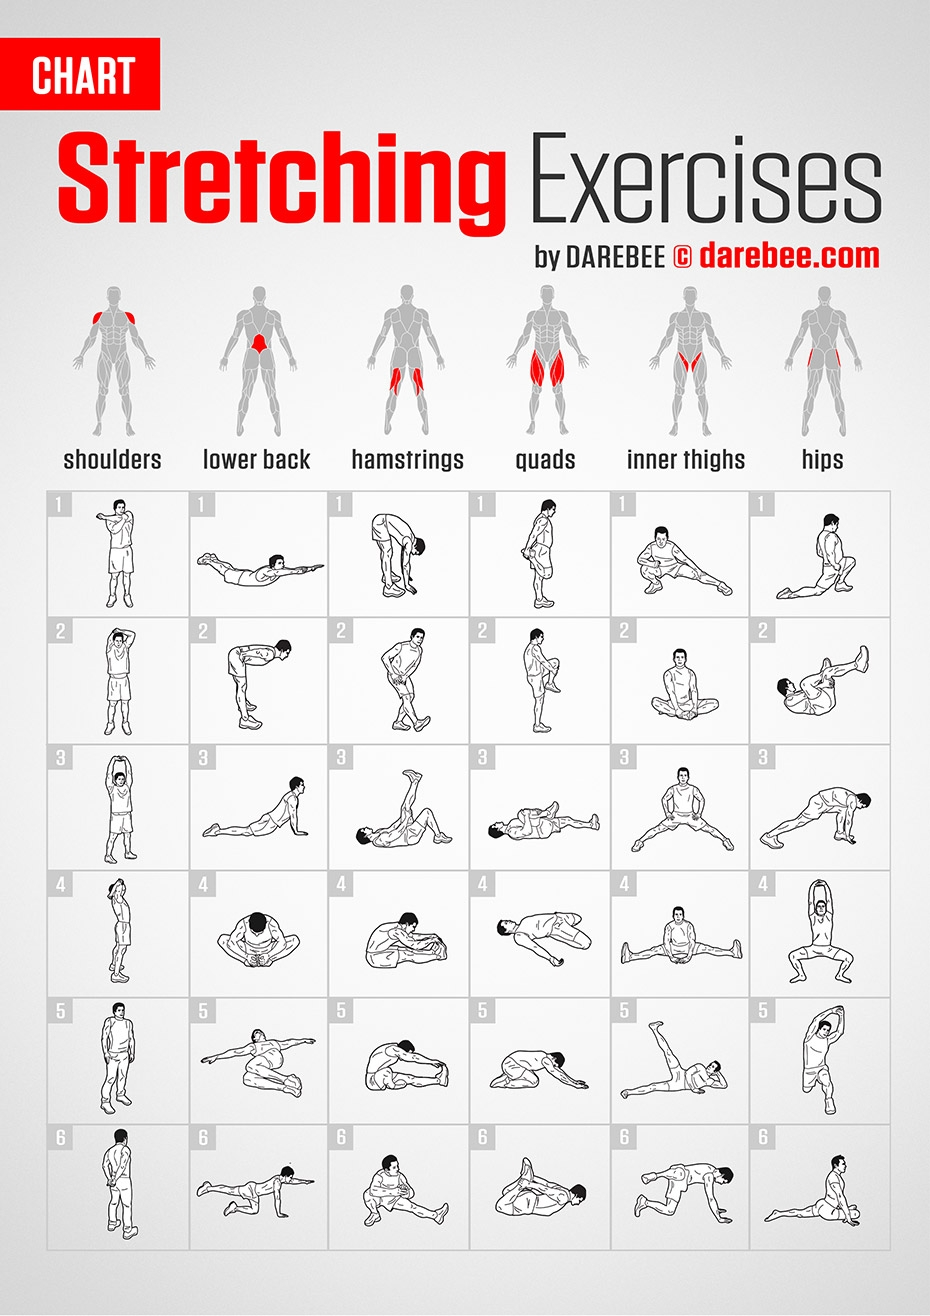 Stretching Exercises | Chartdarebee #darebee #fitness  Exercise Challenge Chart